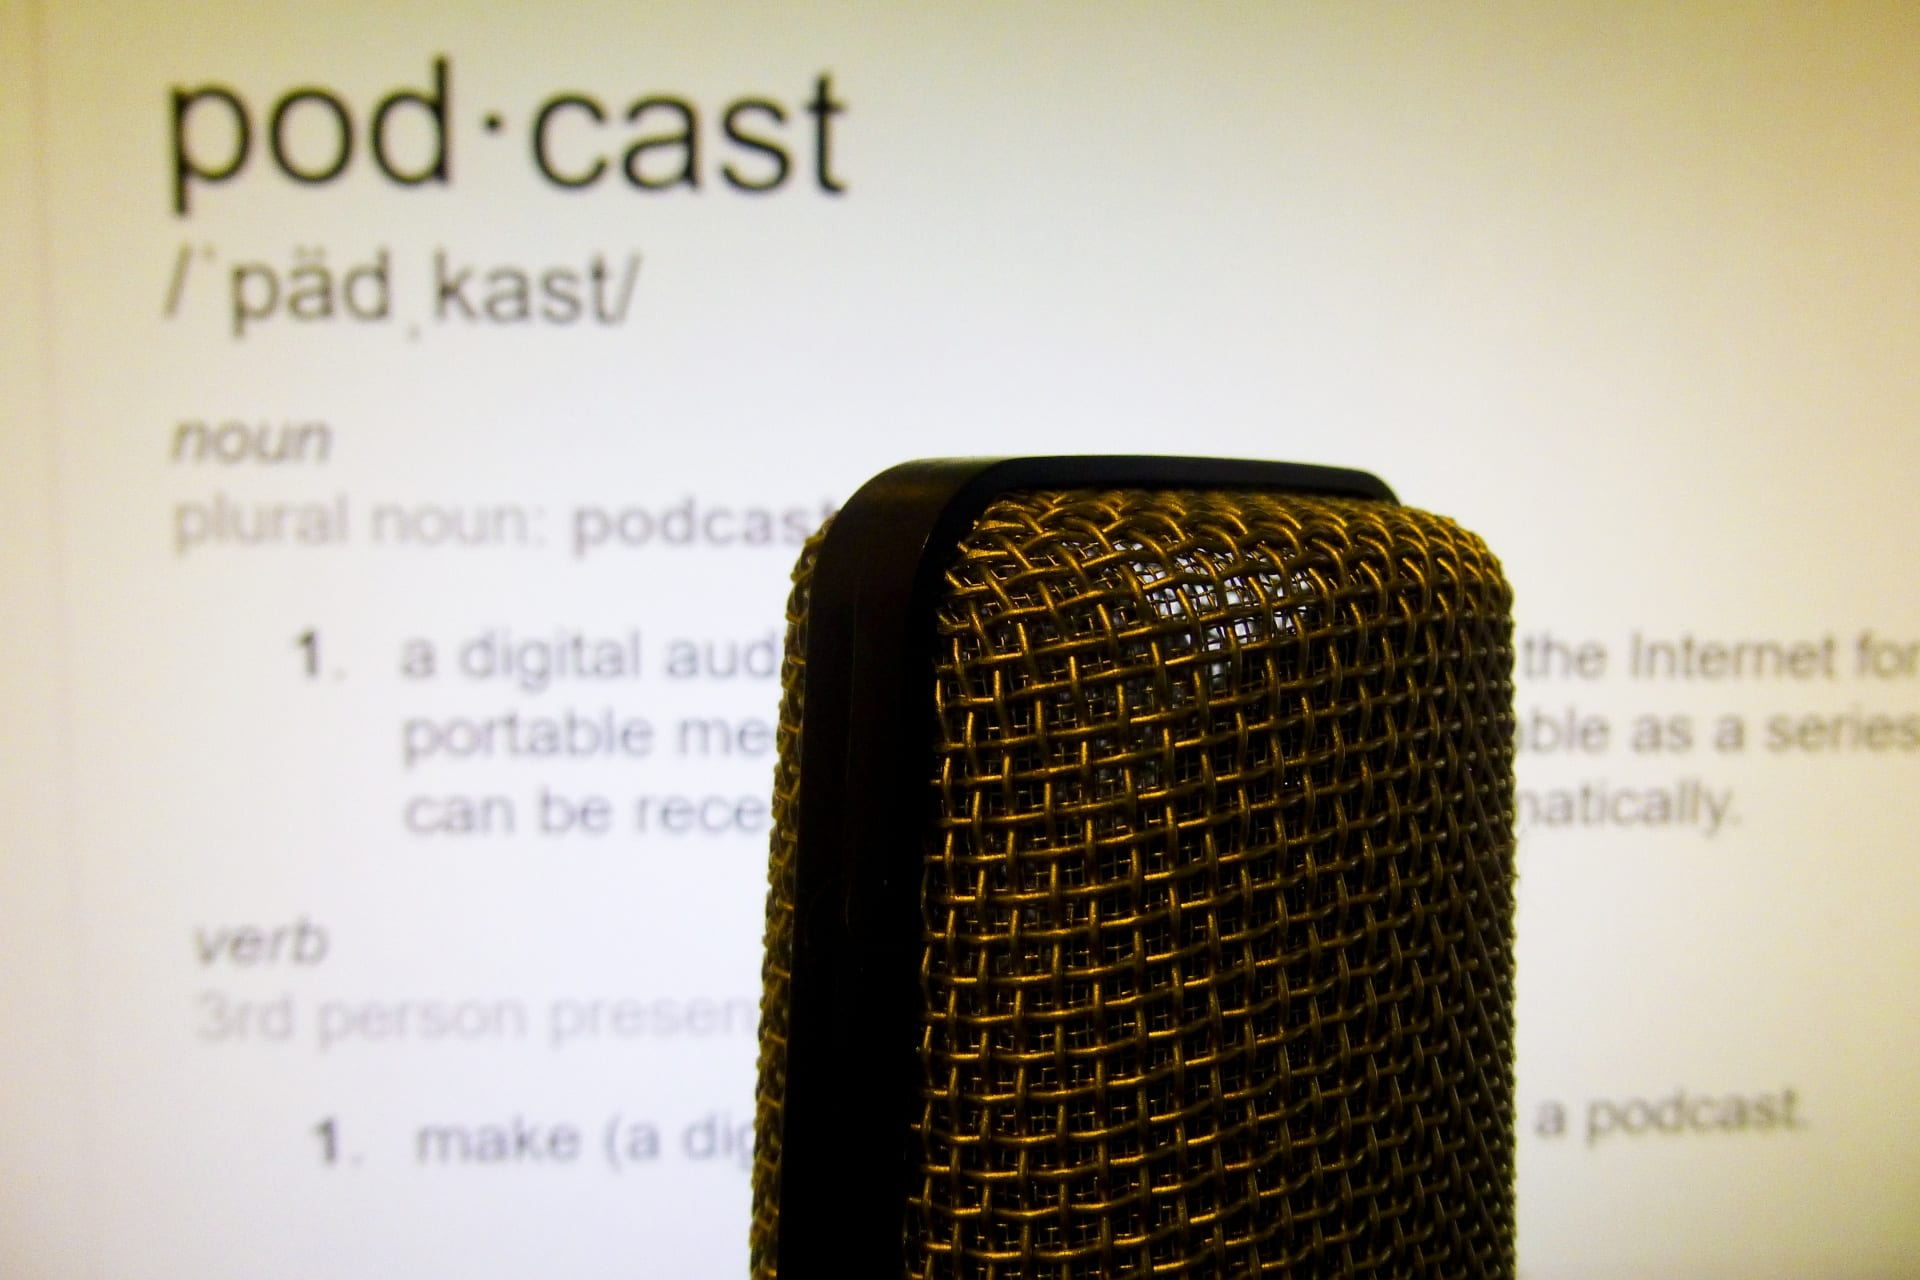 The Basic Income Podcast launched